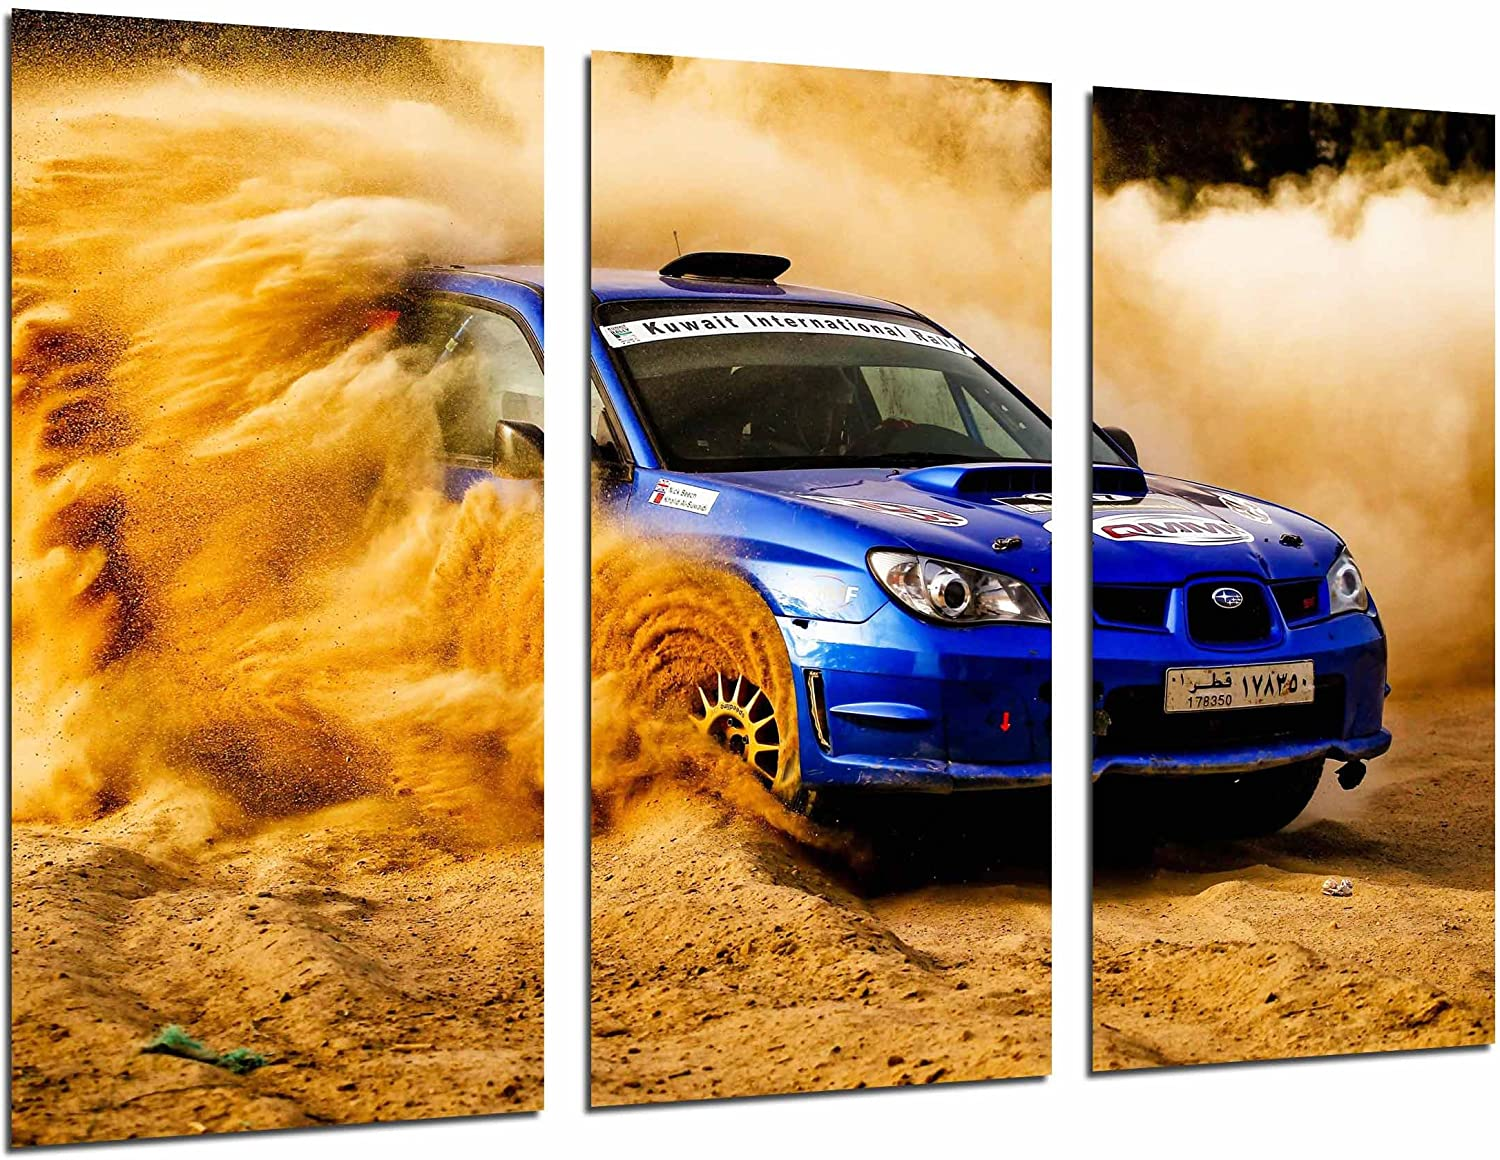 Cuadros Camara Multi Wood Printings Art Print Box Framed Picture Wall Hanging - (Total Size: 38 x 24.4 in), Landscape Desert Nuve Arena, Car Racing Blue Rally - Framed and Ready to Hang - ref. 26986